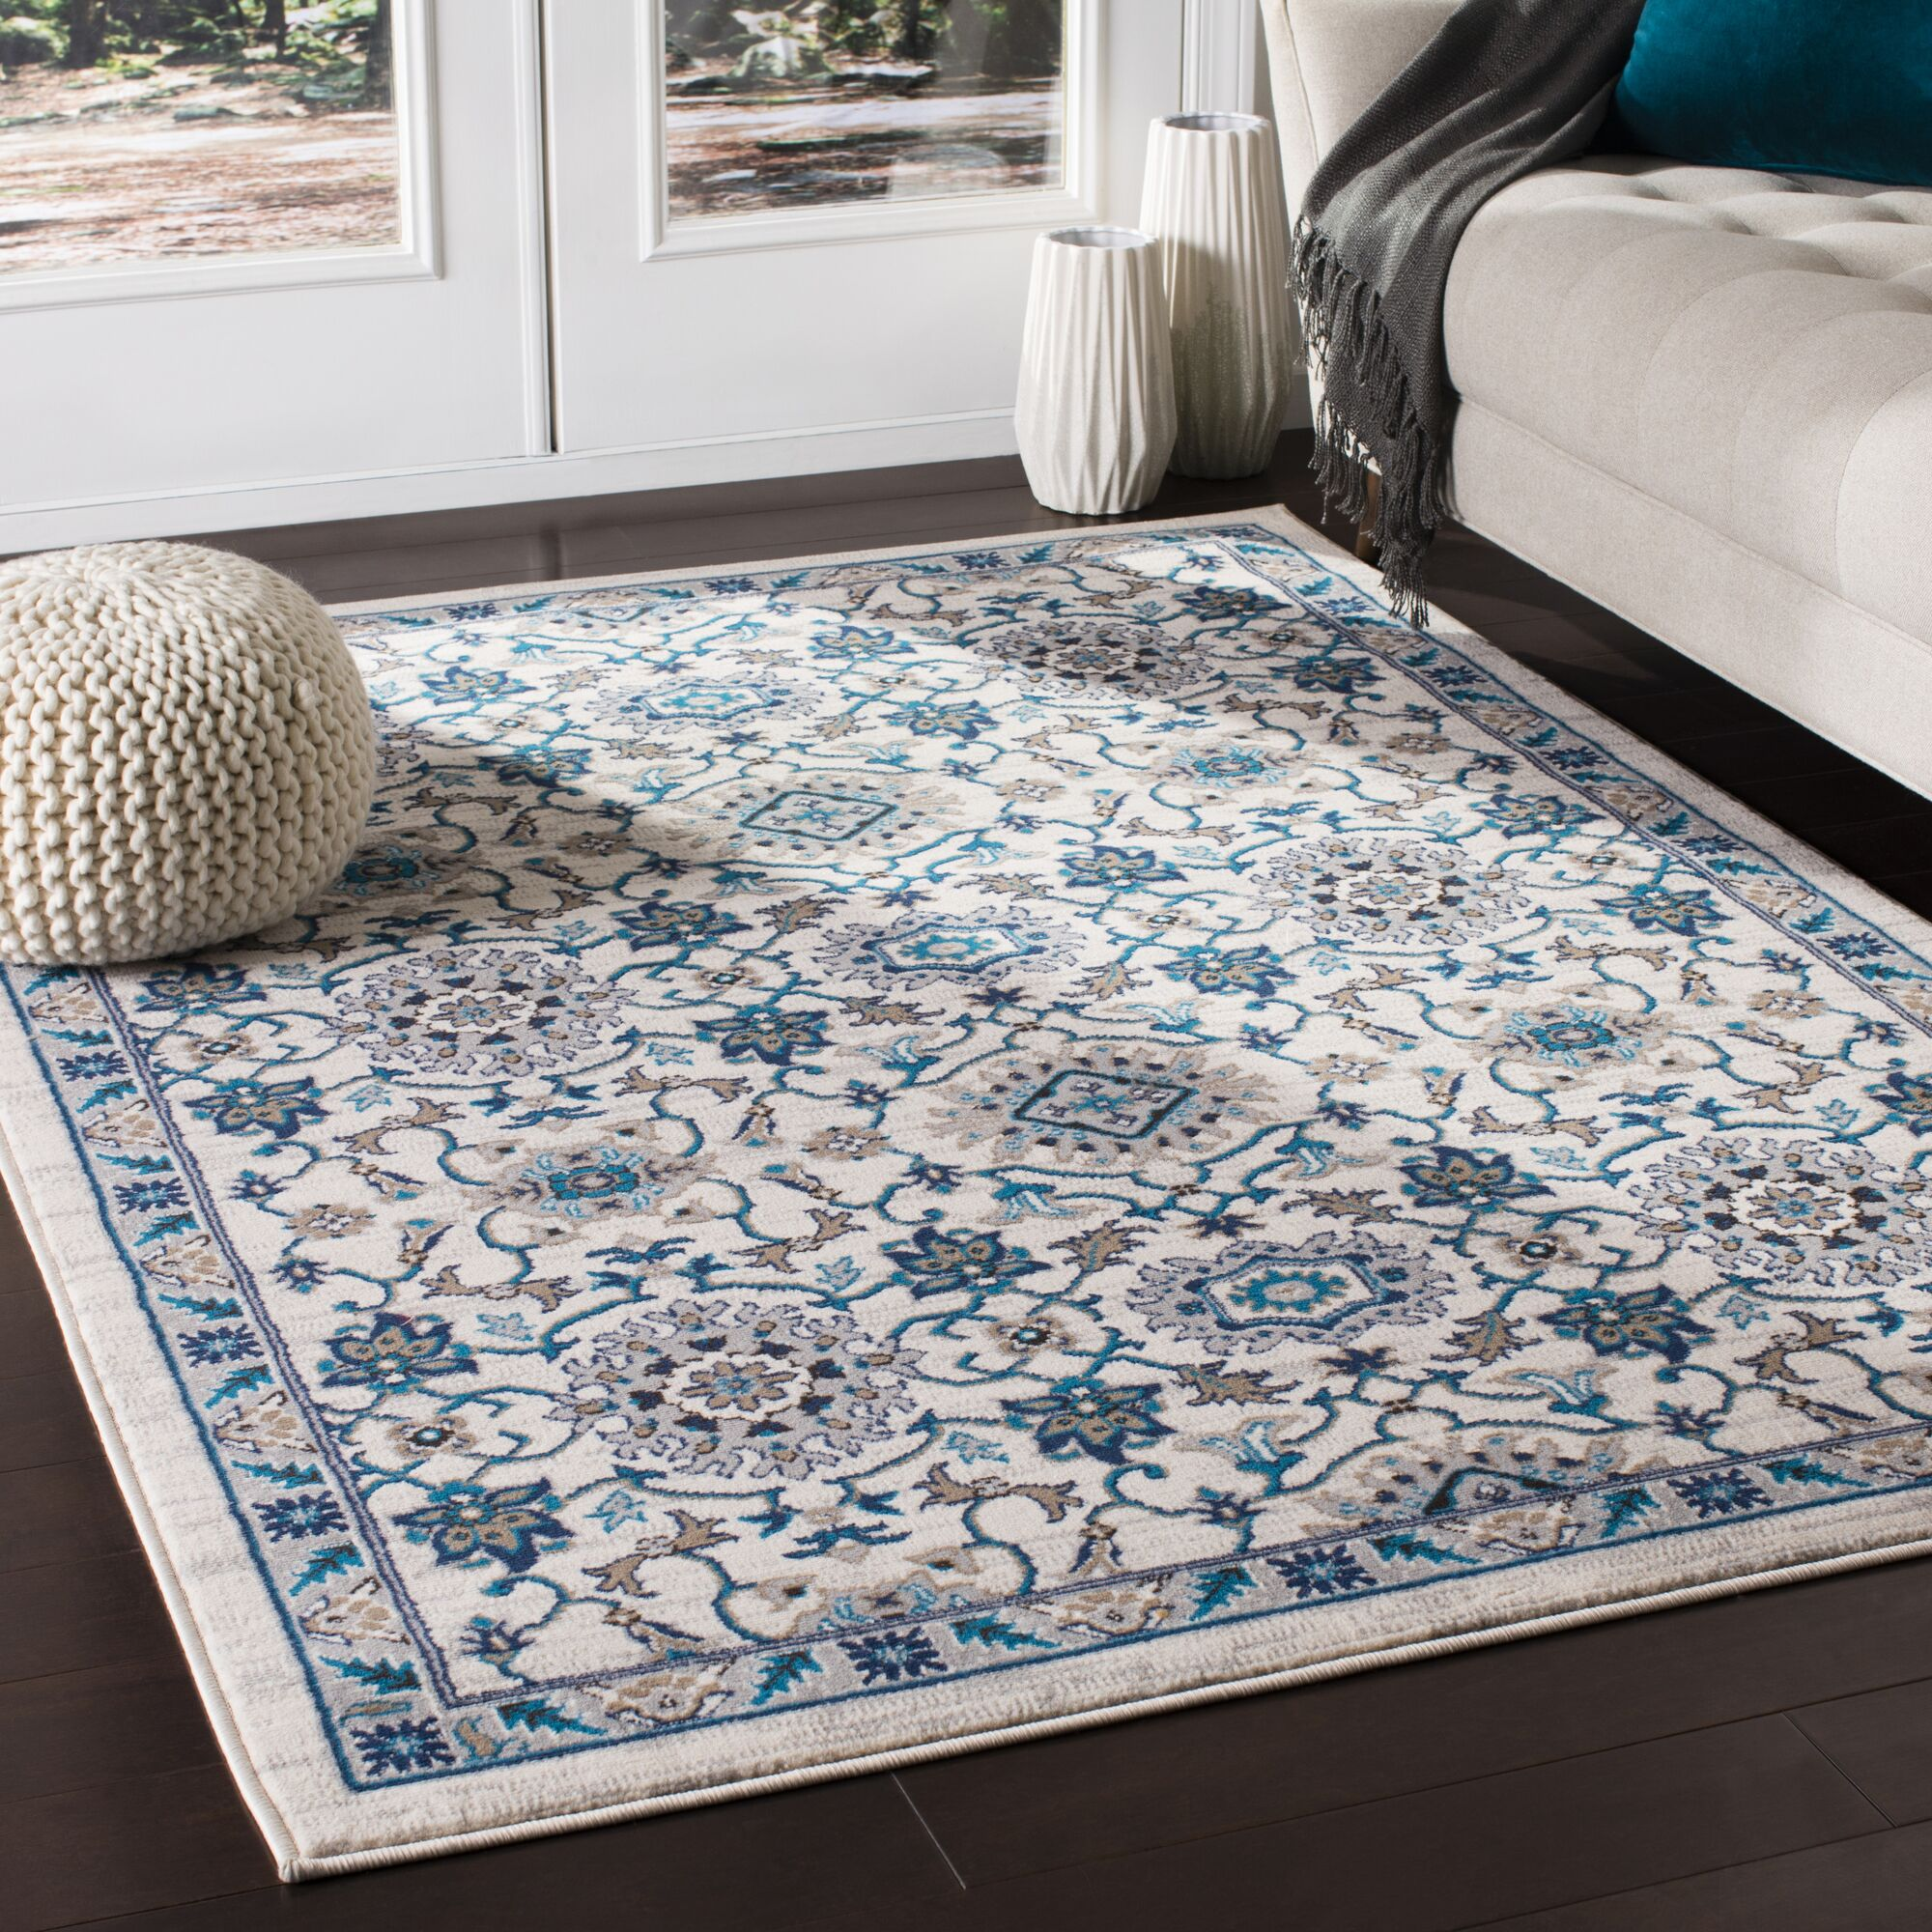 Kent Traditional Floral Taupe/Teal Area Rug Rug Size: Rectangle 7'10